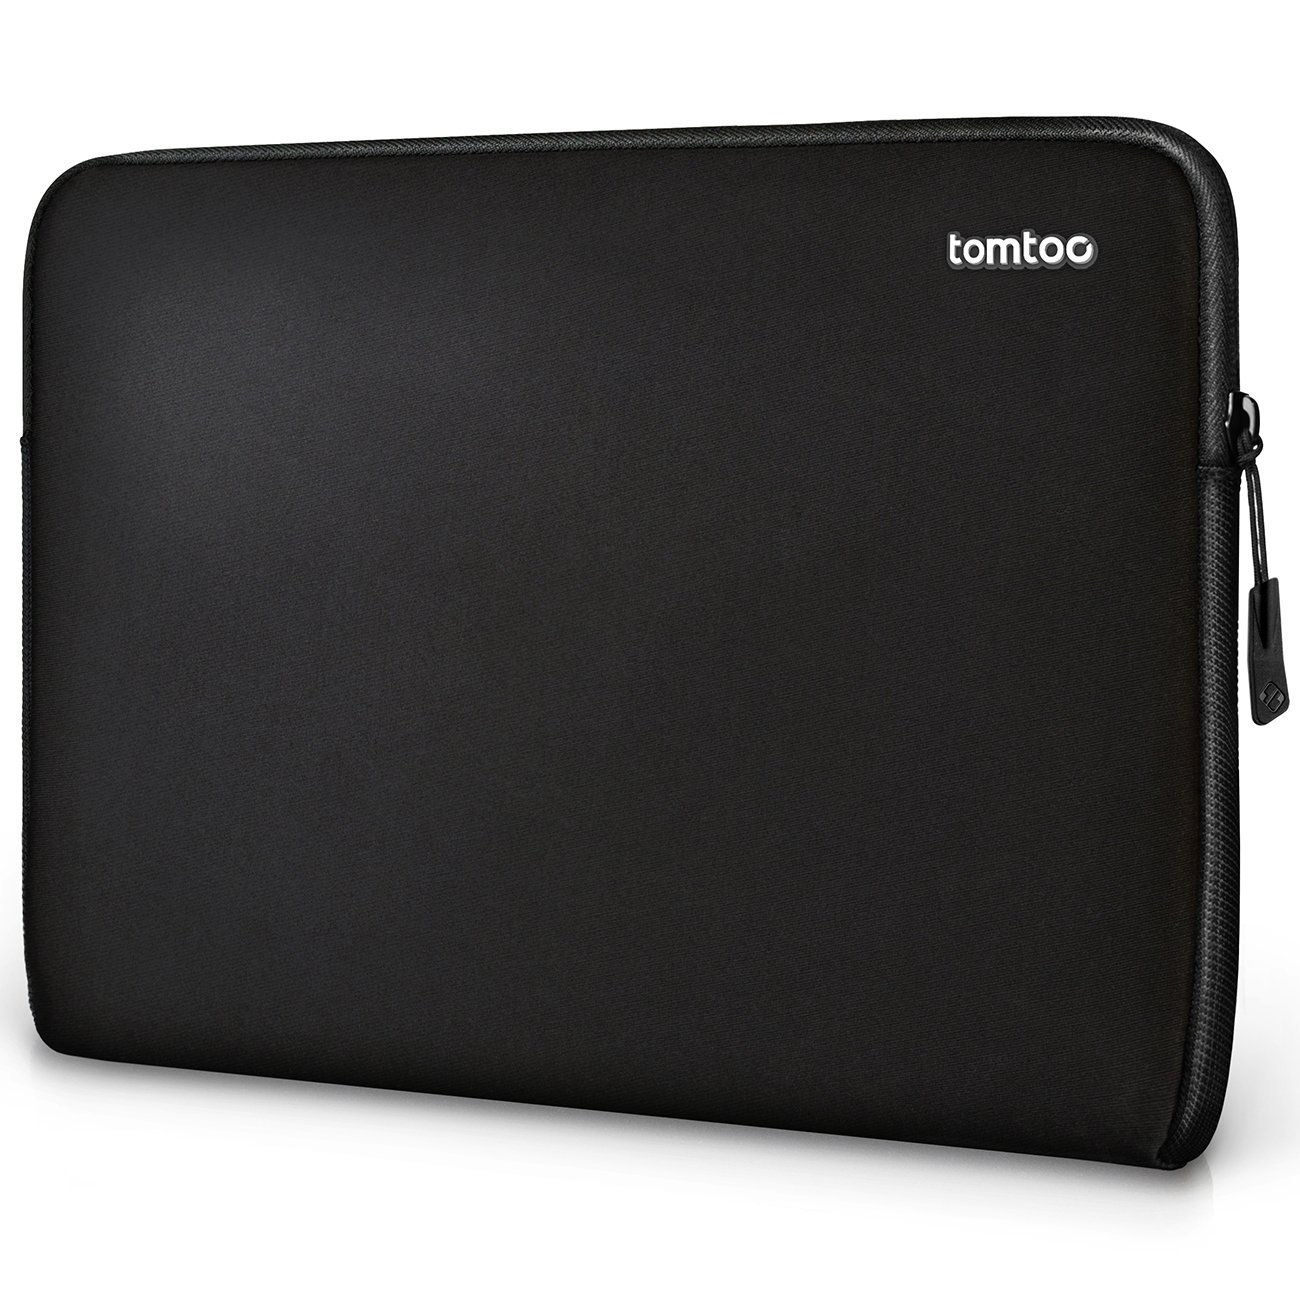 tomtoc Laptop Sleeve Fit for Microsoft New Surface Pro/Apple 13-inch MacBook Pro Thunderbolt 3 (USB-C) A1989 A1706 A1708/ Dell XPS 13, Black